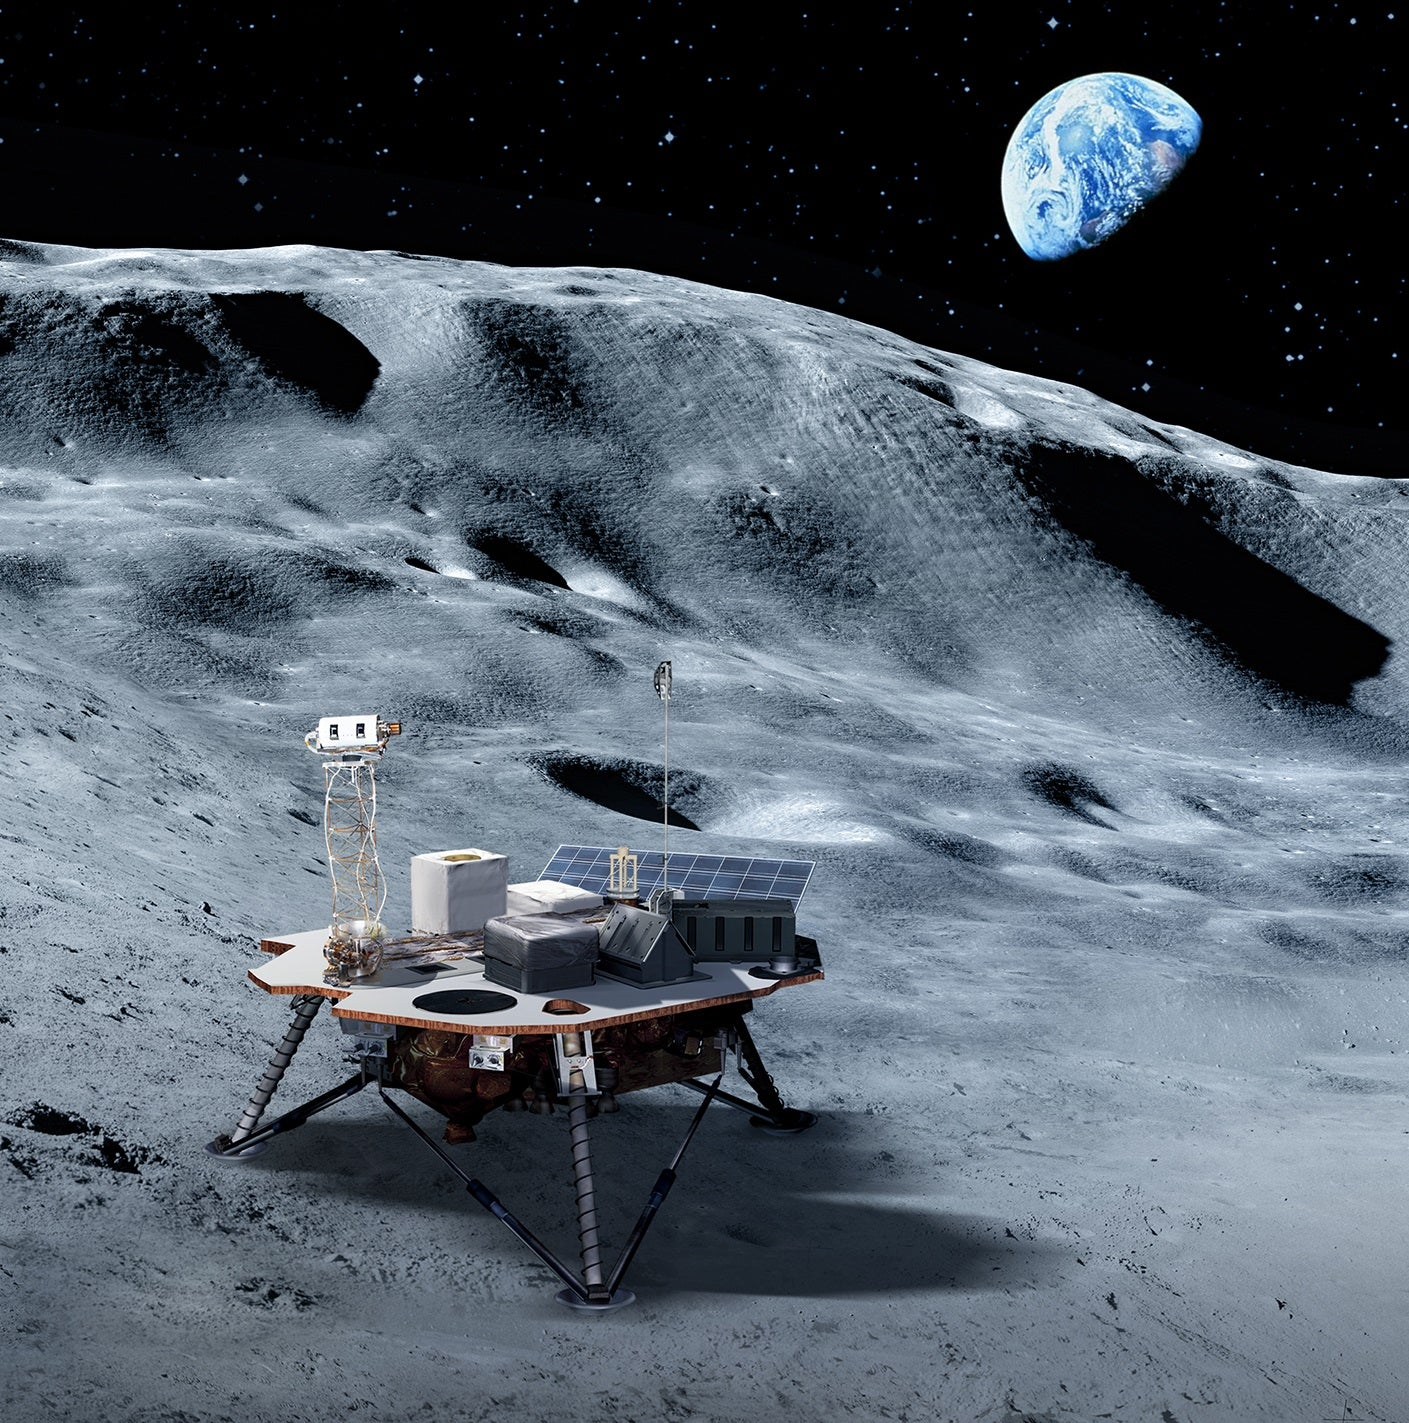 nasa commercial lunar payload services - HD1200×926